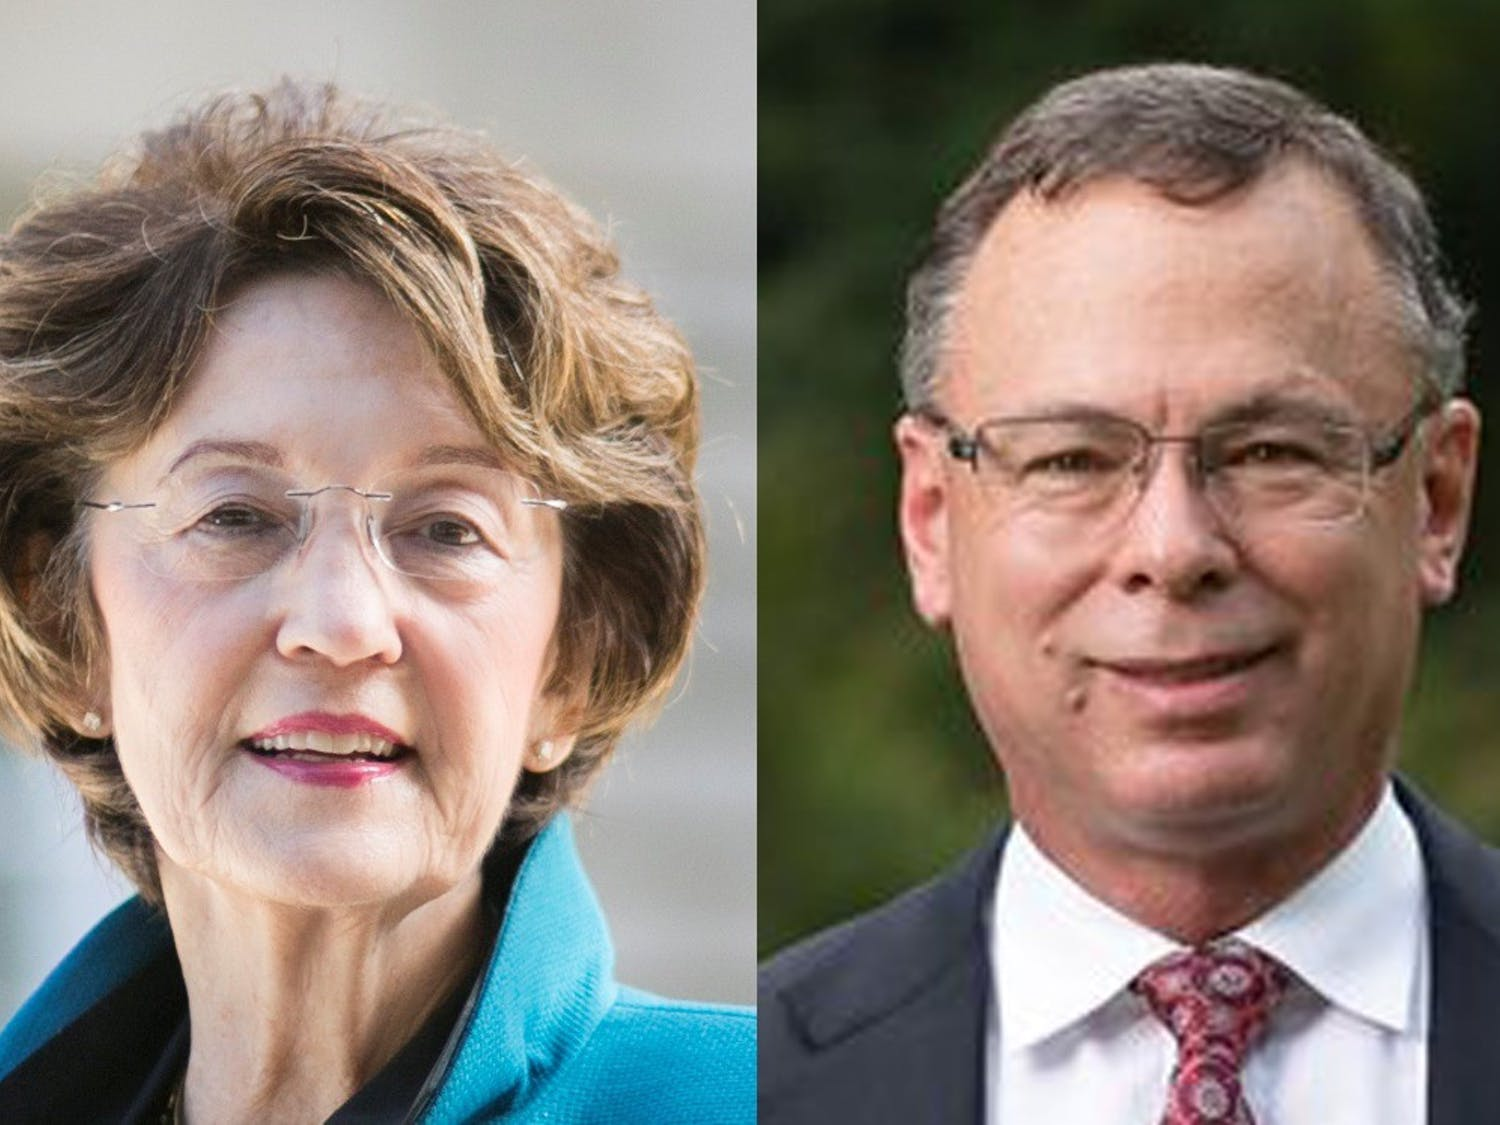 Incumbent Democrat Elaine Marshall (left) and Republican E.C. Sykes (right) are the candidates for N.C.  Secretary of State. Photos courtesy of Marshall and Sykes.